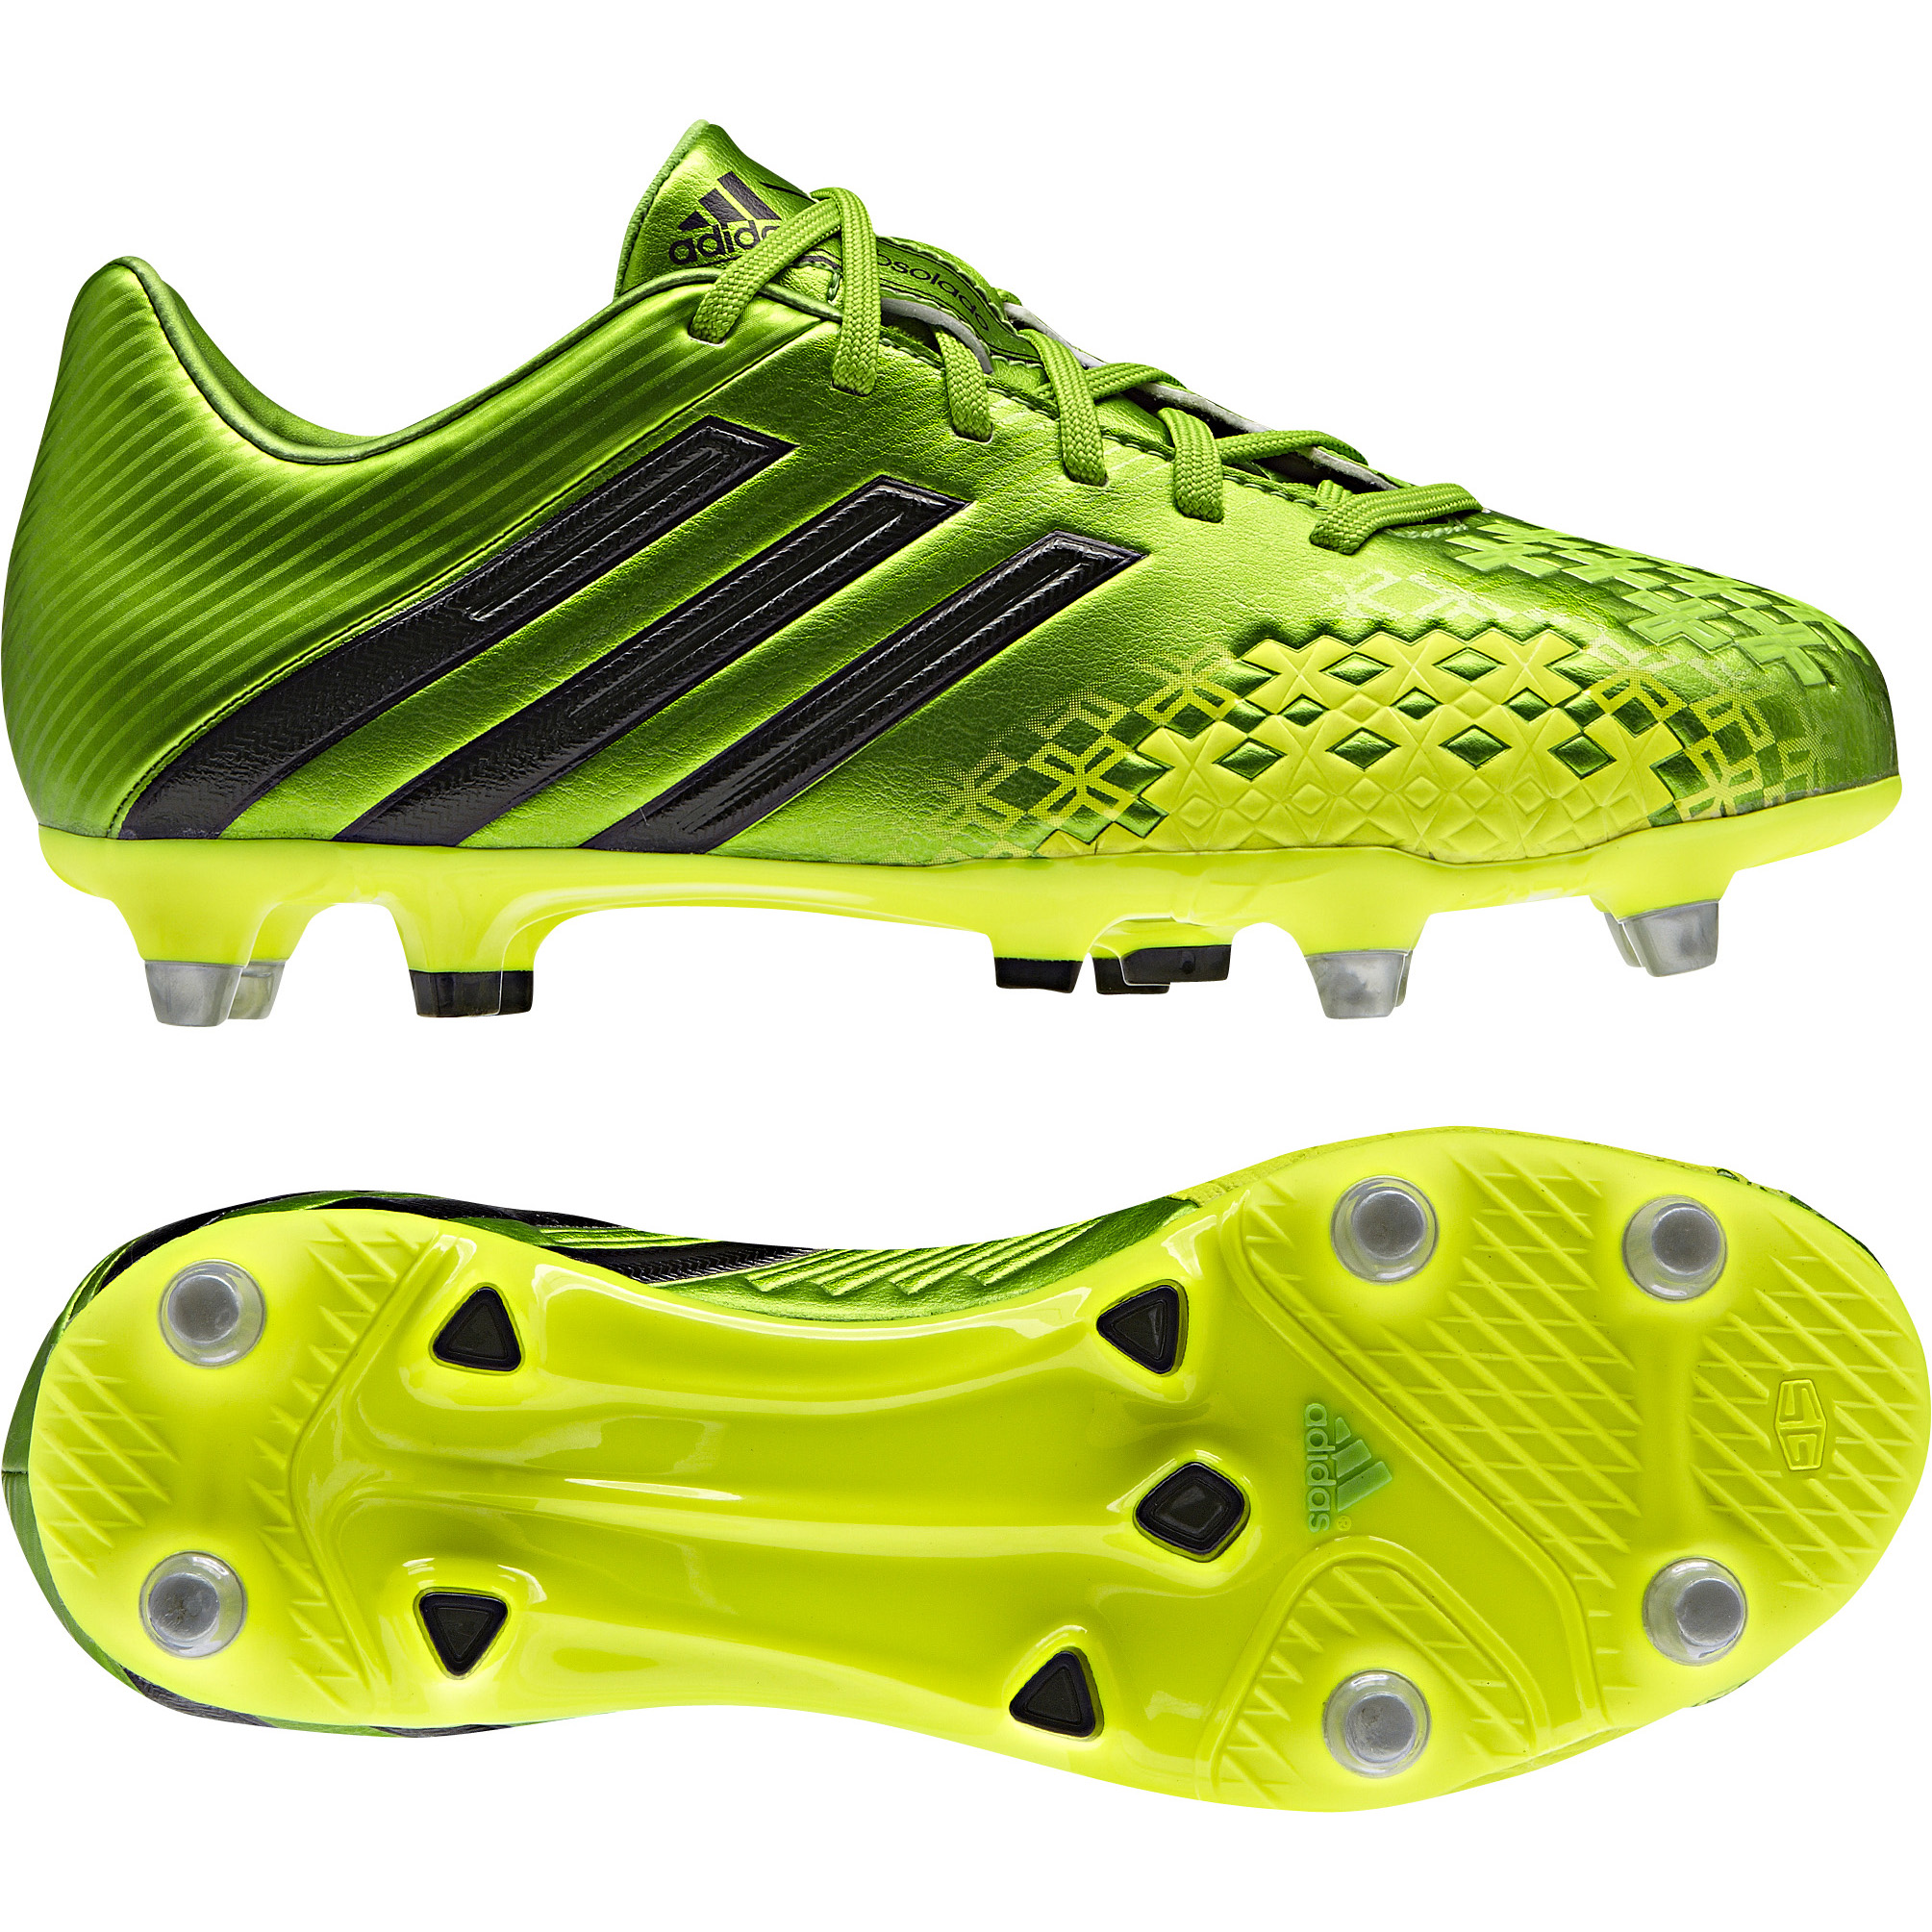 Adidas Predator Absolado LZ TRX Soft Ground Football Boots Green